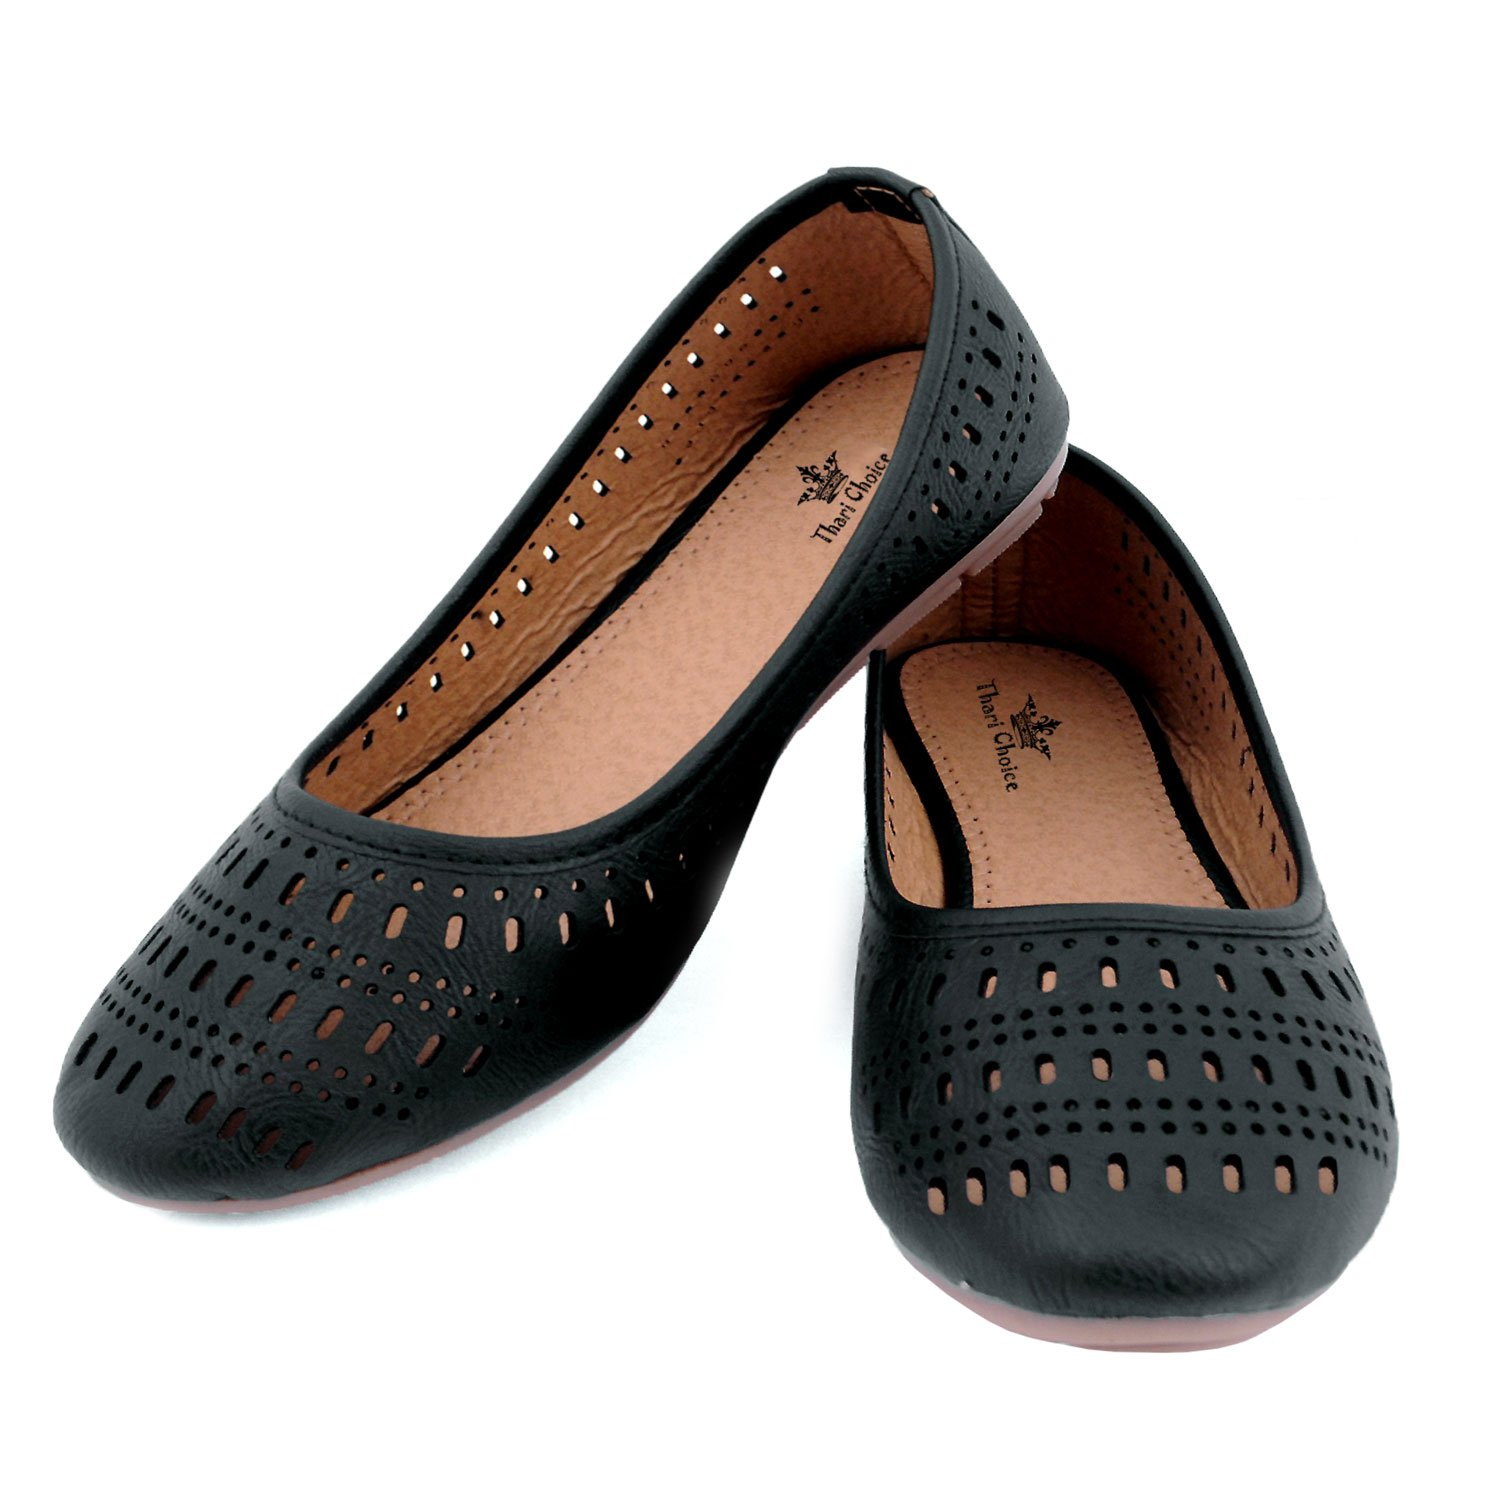 9b60939995ad Thari Choice Women s Faux Leather Ballerinas  Buy Online at Low Prices in  India - Amazon.in